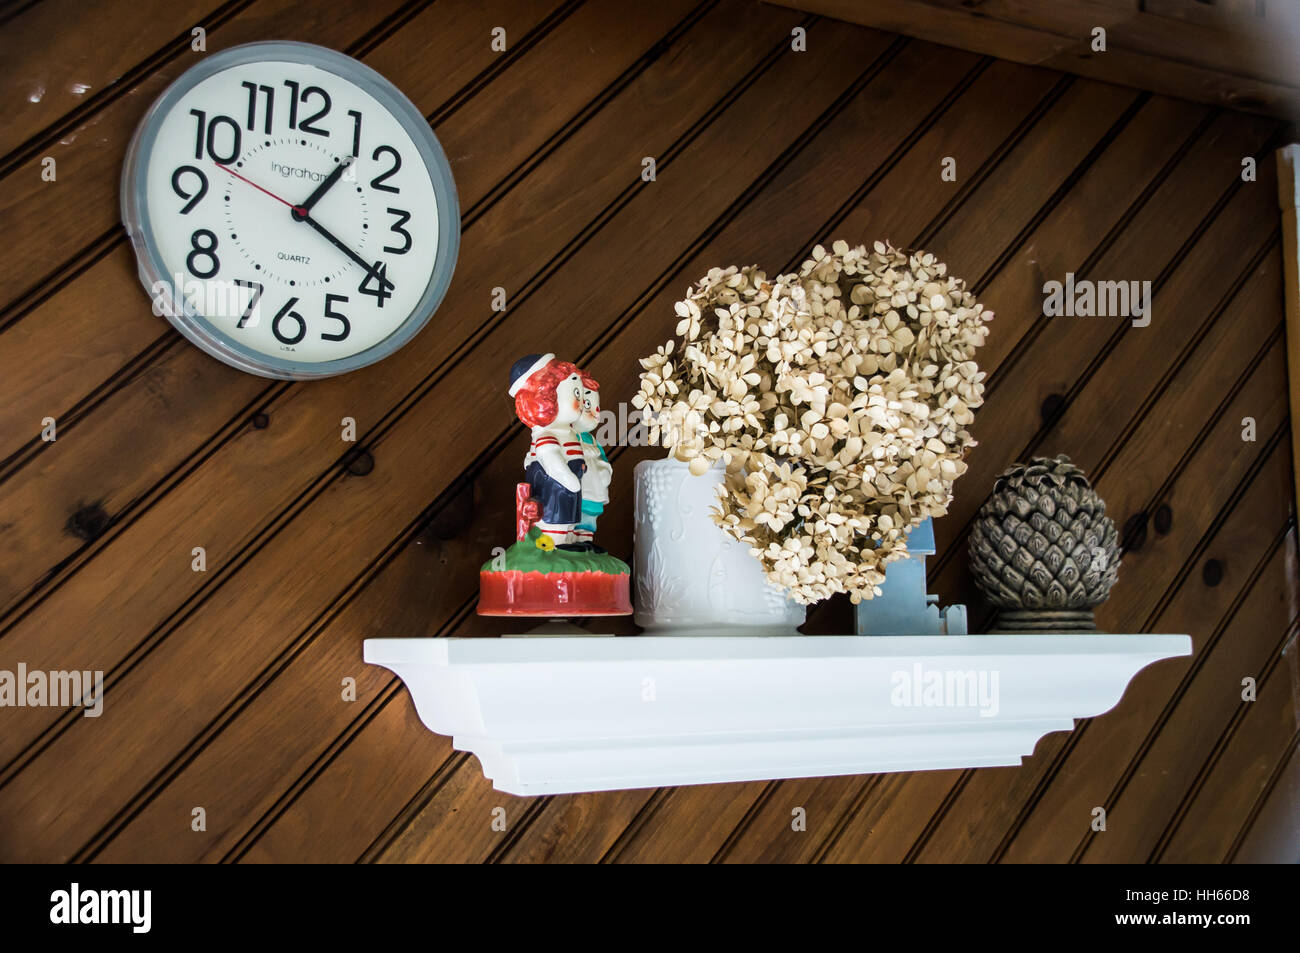 Mantle decoration and wall clock - Stock Image